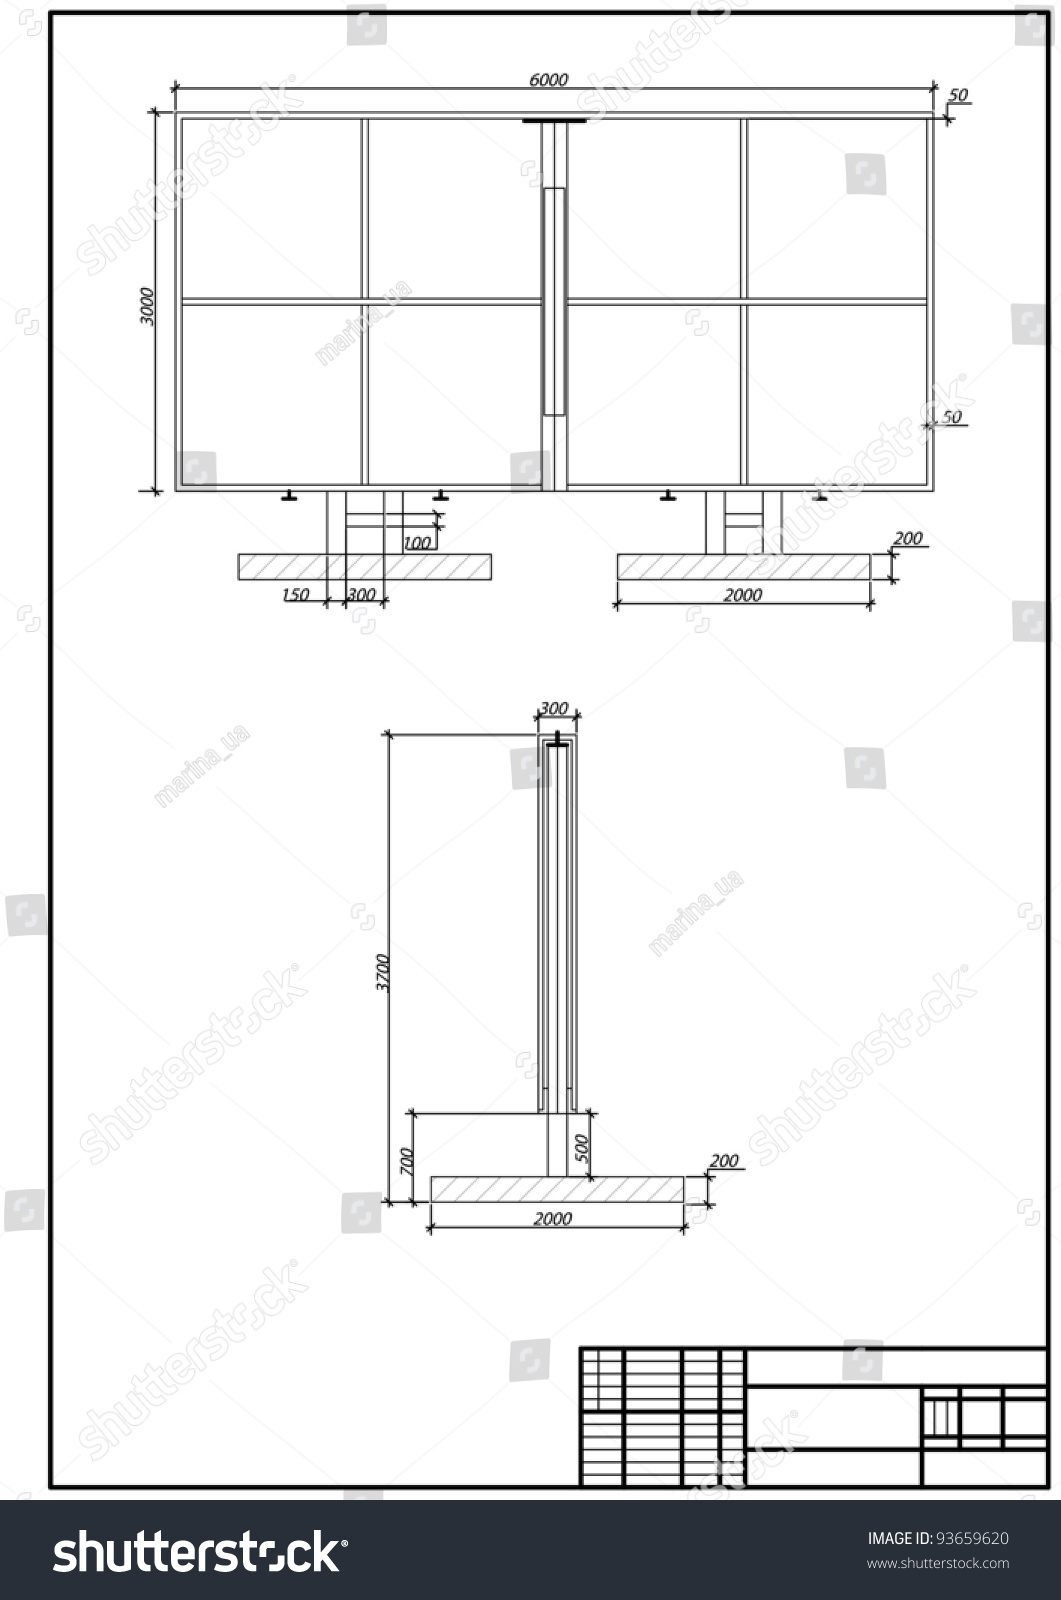 Architectural Drawing Borders architectural drawing billboard autocad vector stock vector